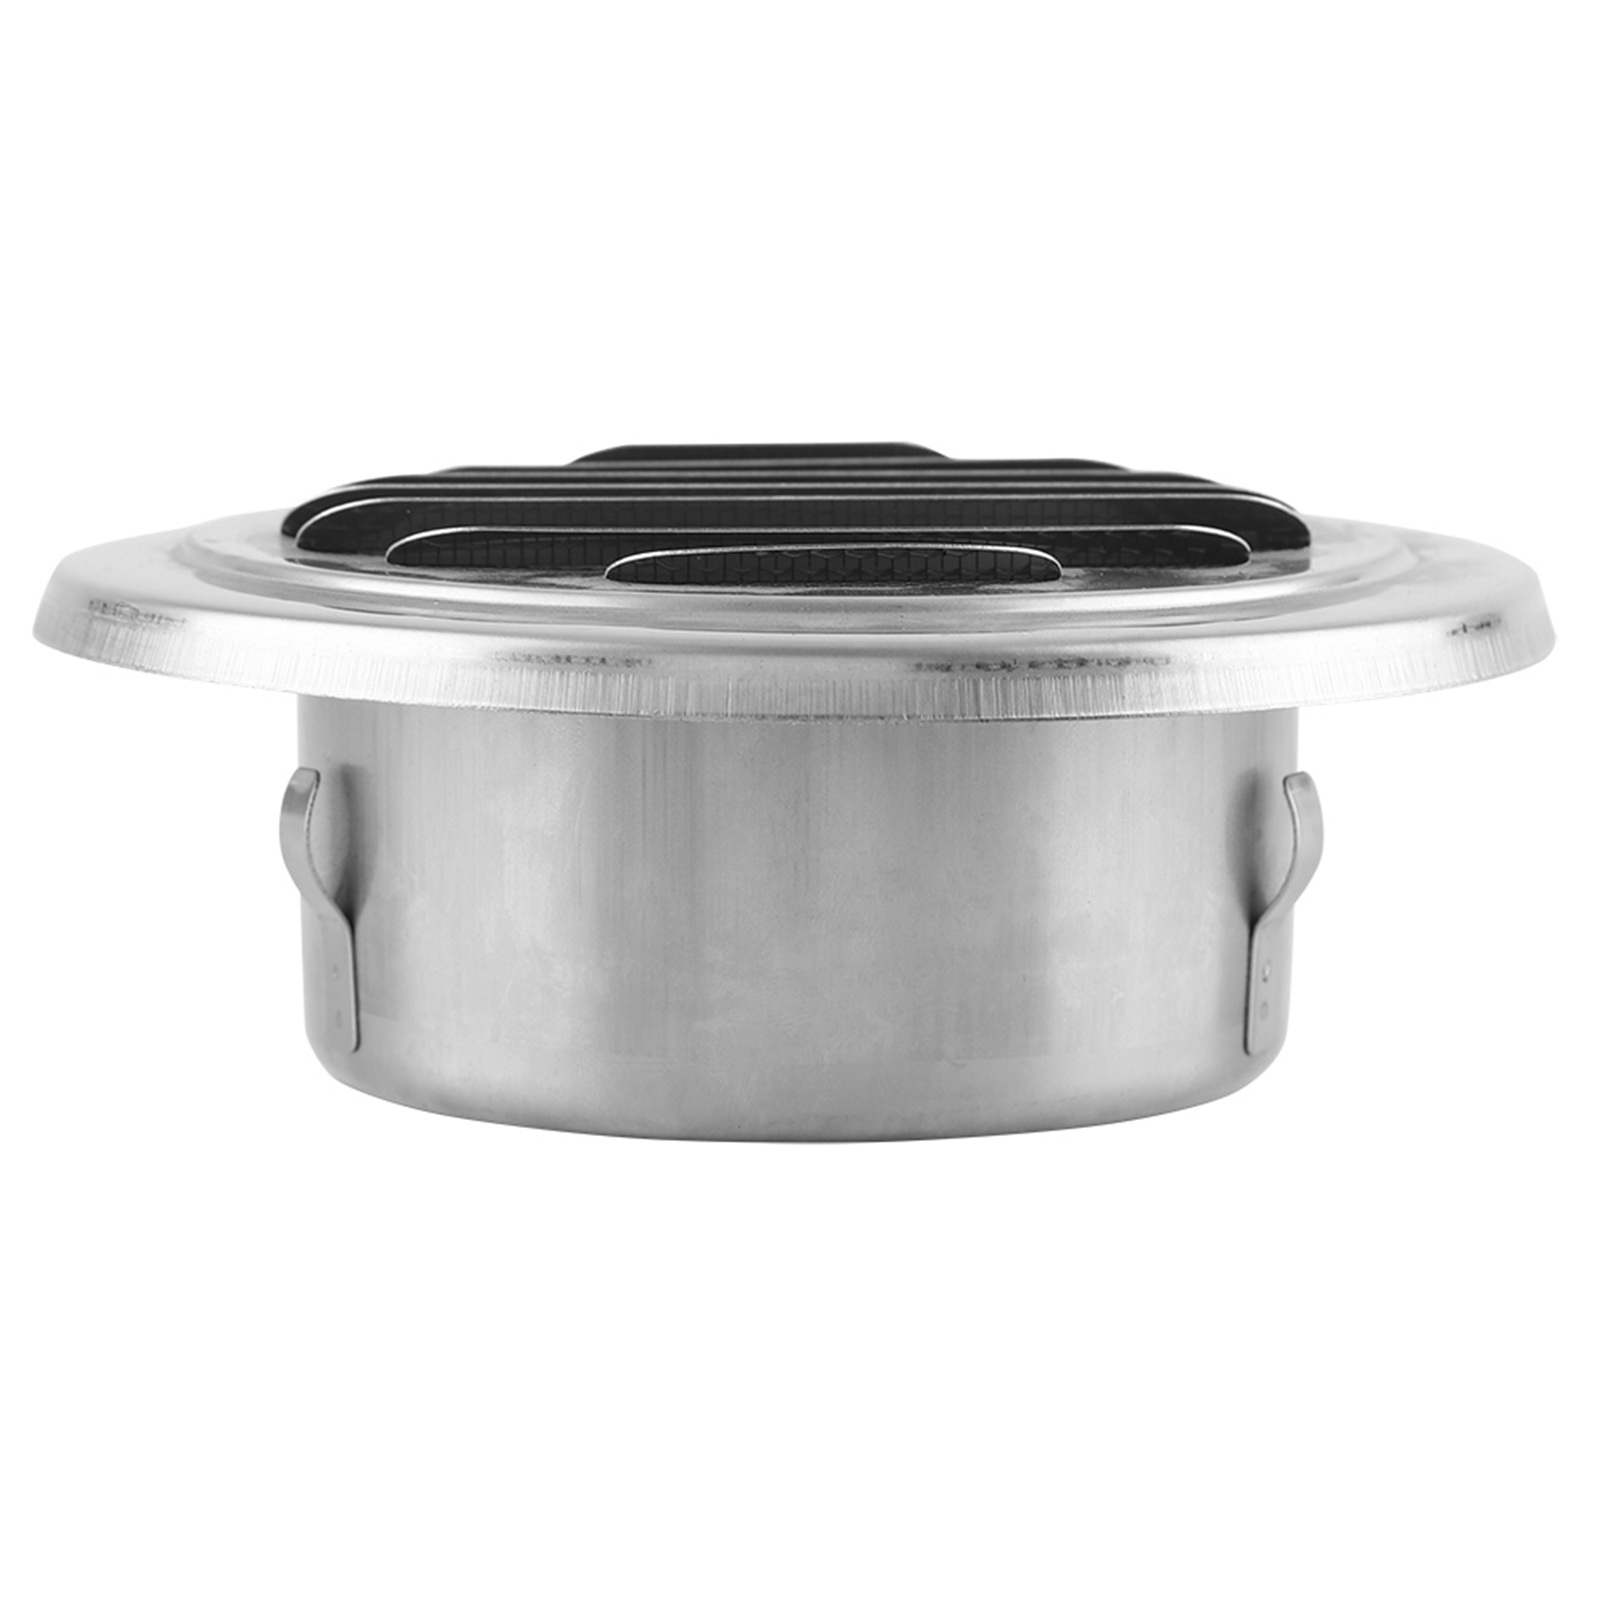 Stainless-Steel-Wall-Air-Vent-Ducting-Ventilation-Exhaust-Grille-Cover-Outlet-HG thumbnail 14